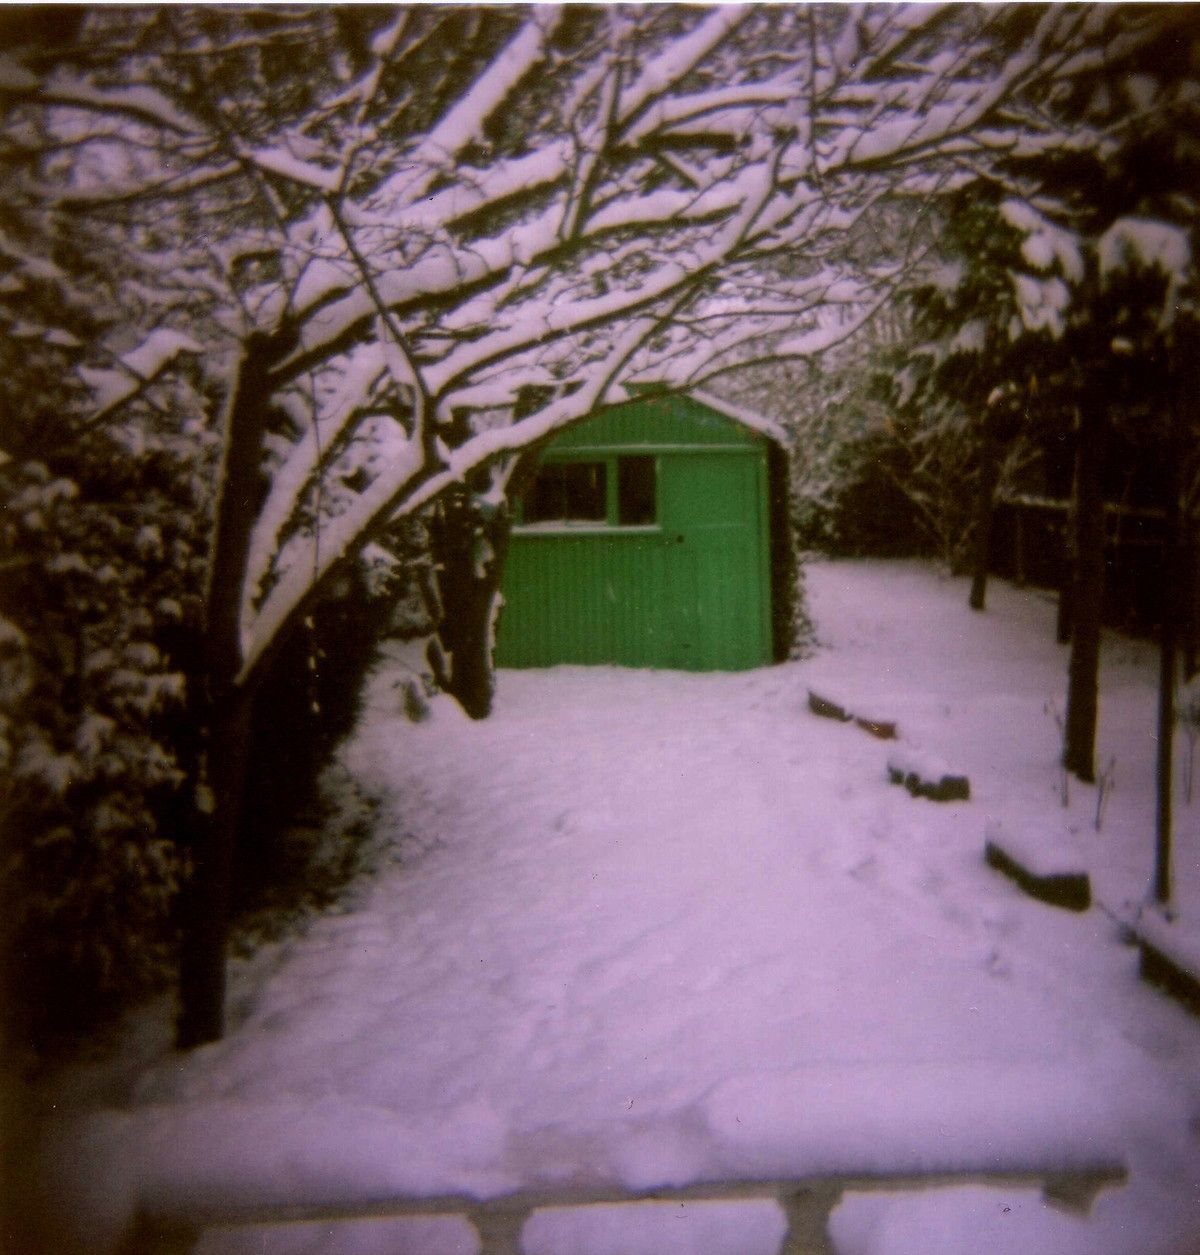 """A Submission for """"White Christmas Flash Rumble"""" - Lomography"""